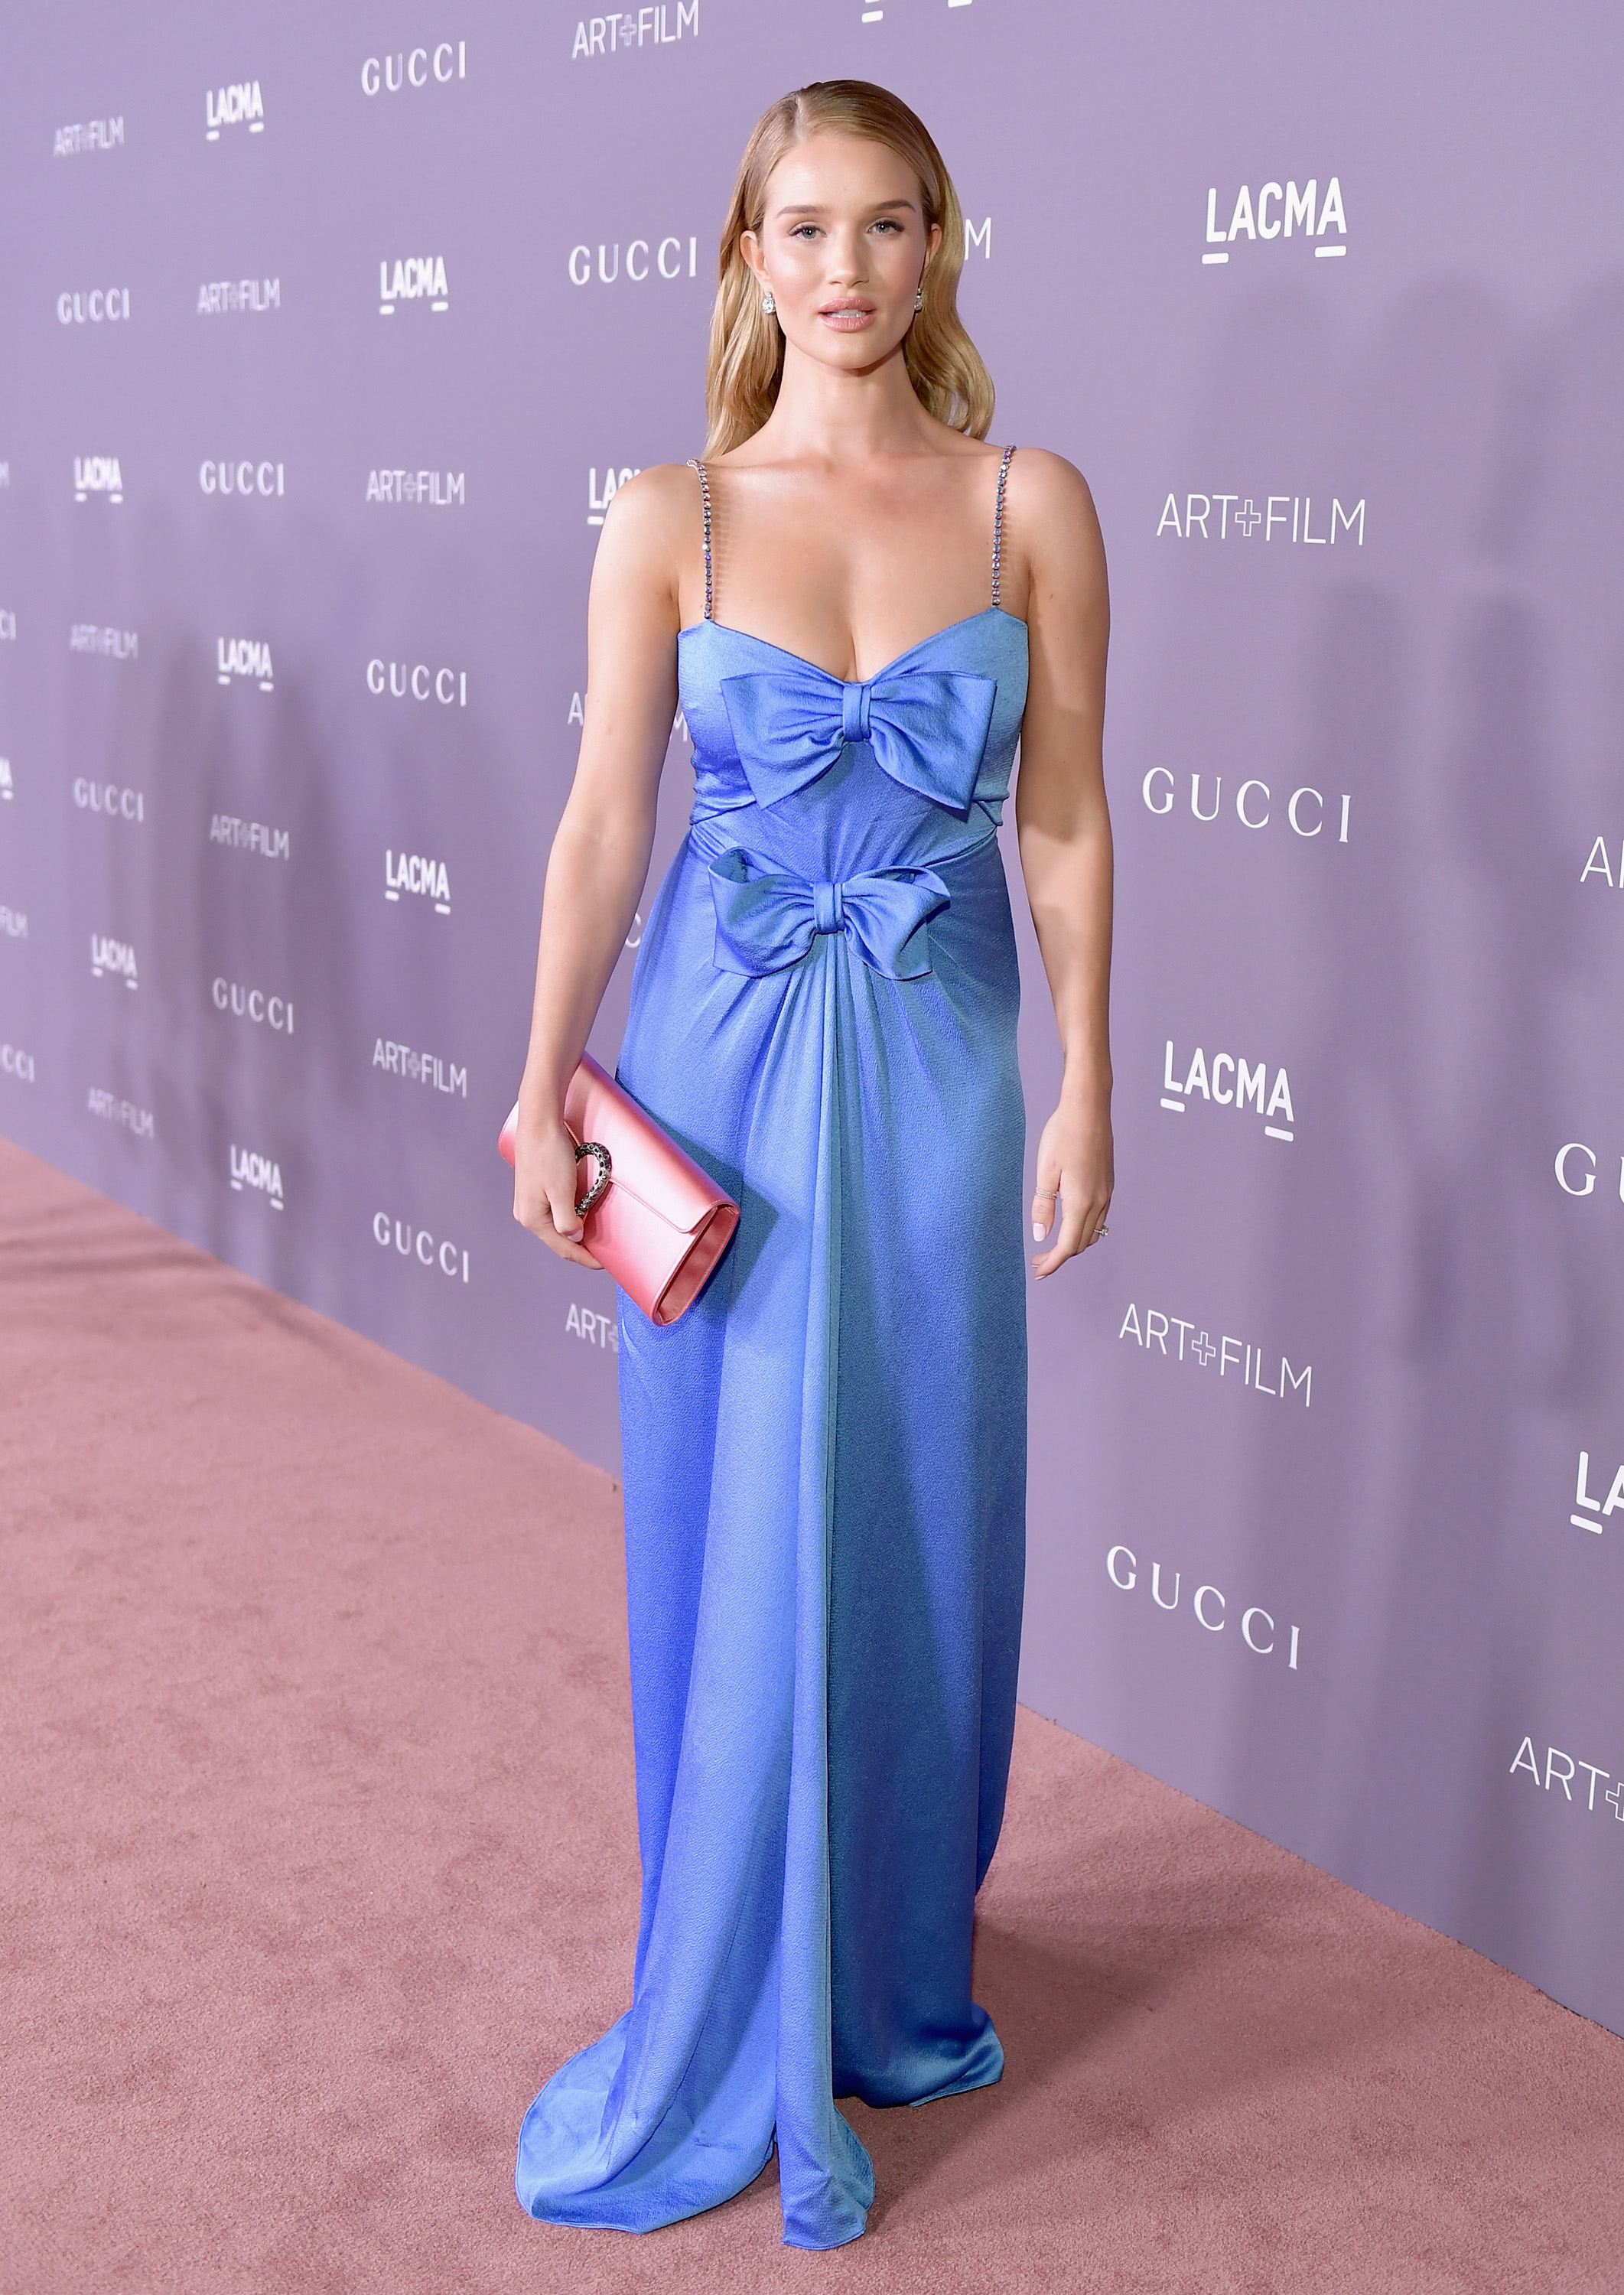 LOS ANGELES, CA - NOVEMBER 04: Actor Rosie Huntington-Whiteley attends the 2017 LACMA Art + Film Gala Honoring Mark Bradford and George Lucas presented by Gucci at LACMA on November 4, 2017 in Los Angeles, California. (Photo by Neilson Barnard/Getty Images for LACMA)